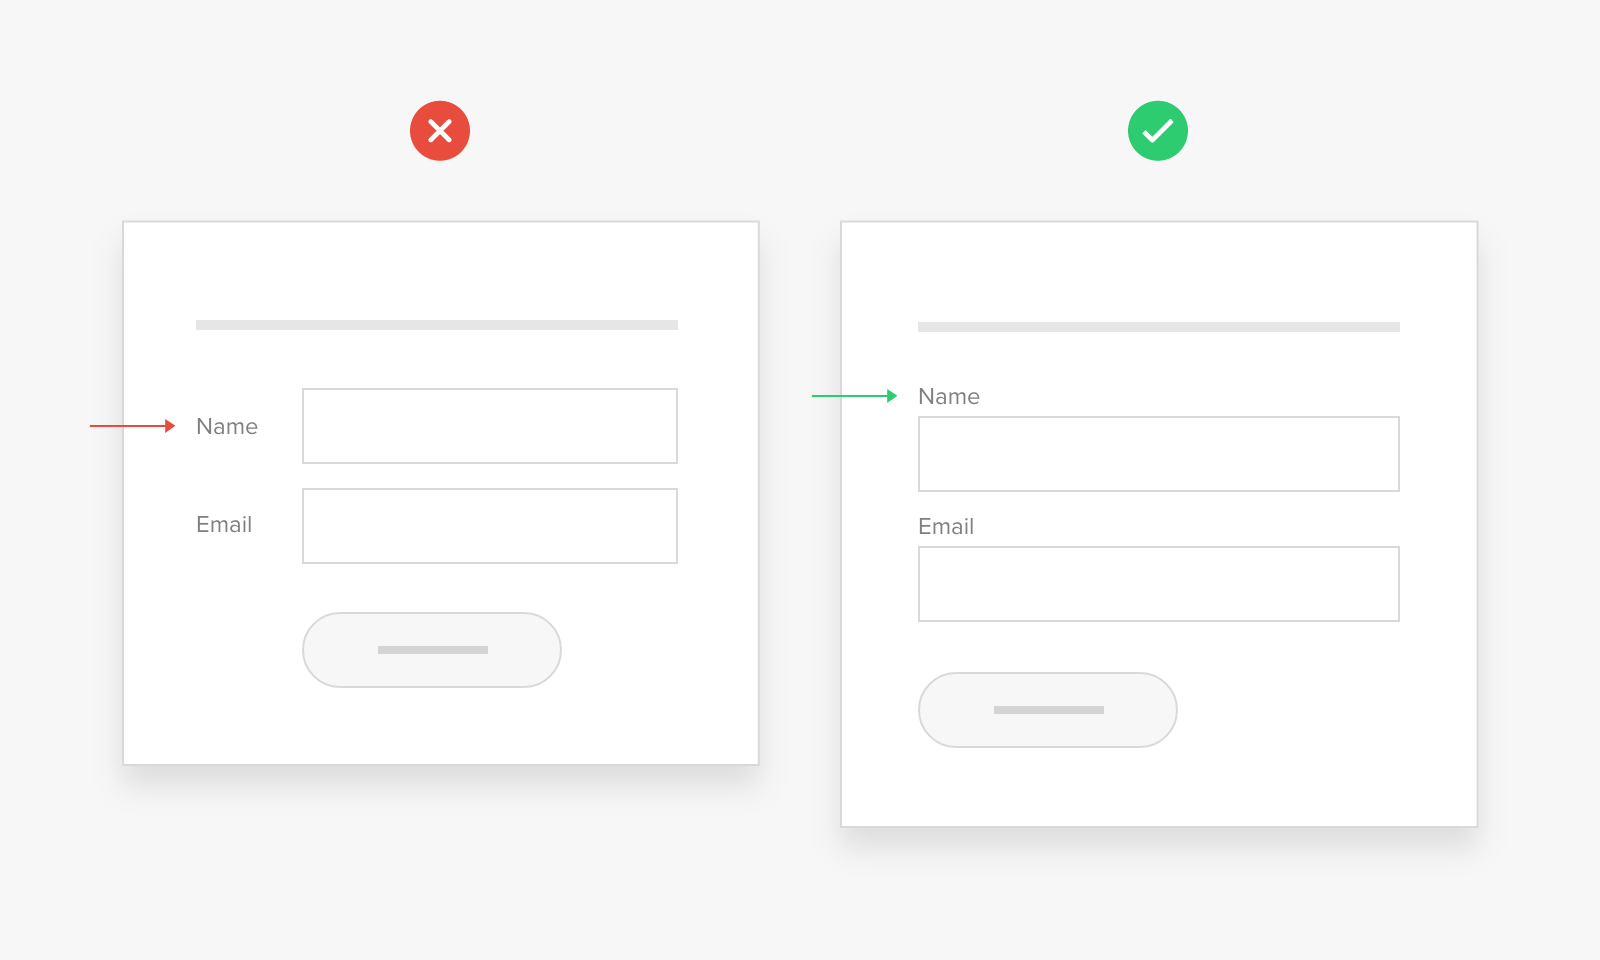 Form best practices: Use top-aligned labels